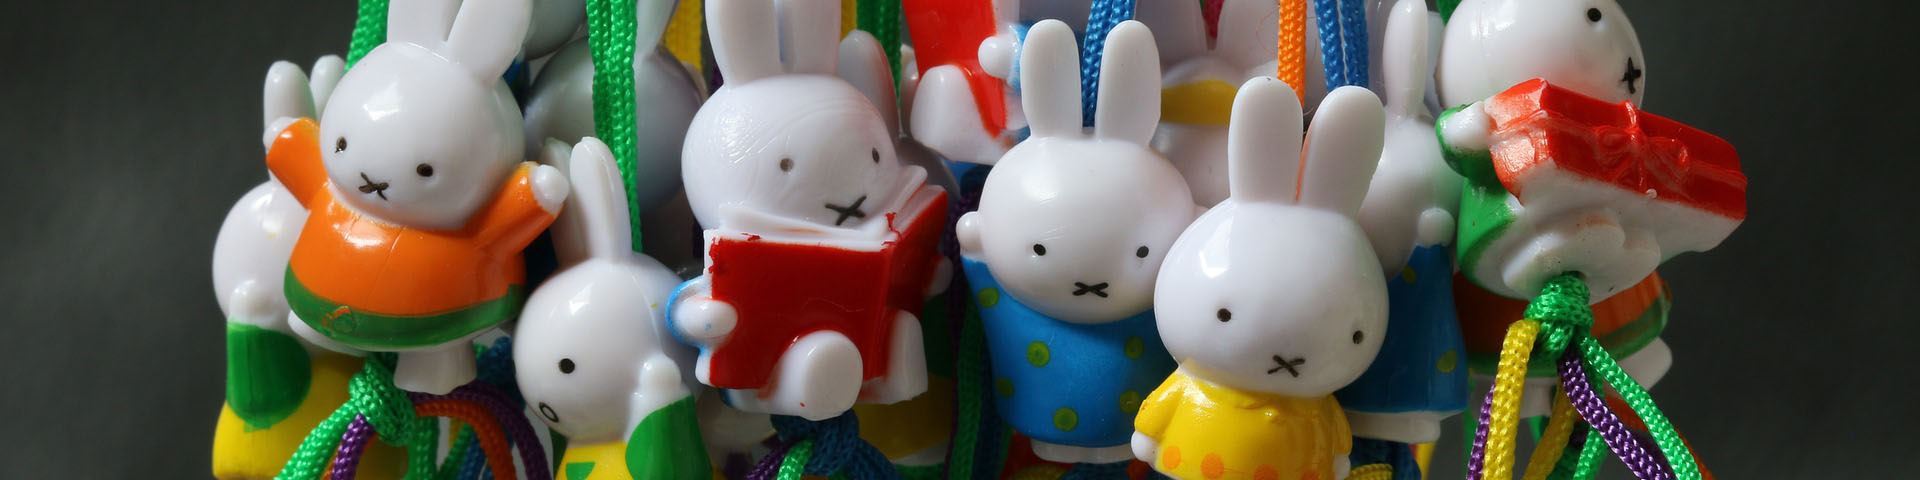 several Miffy's together